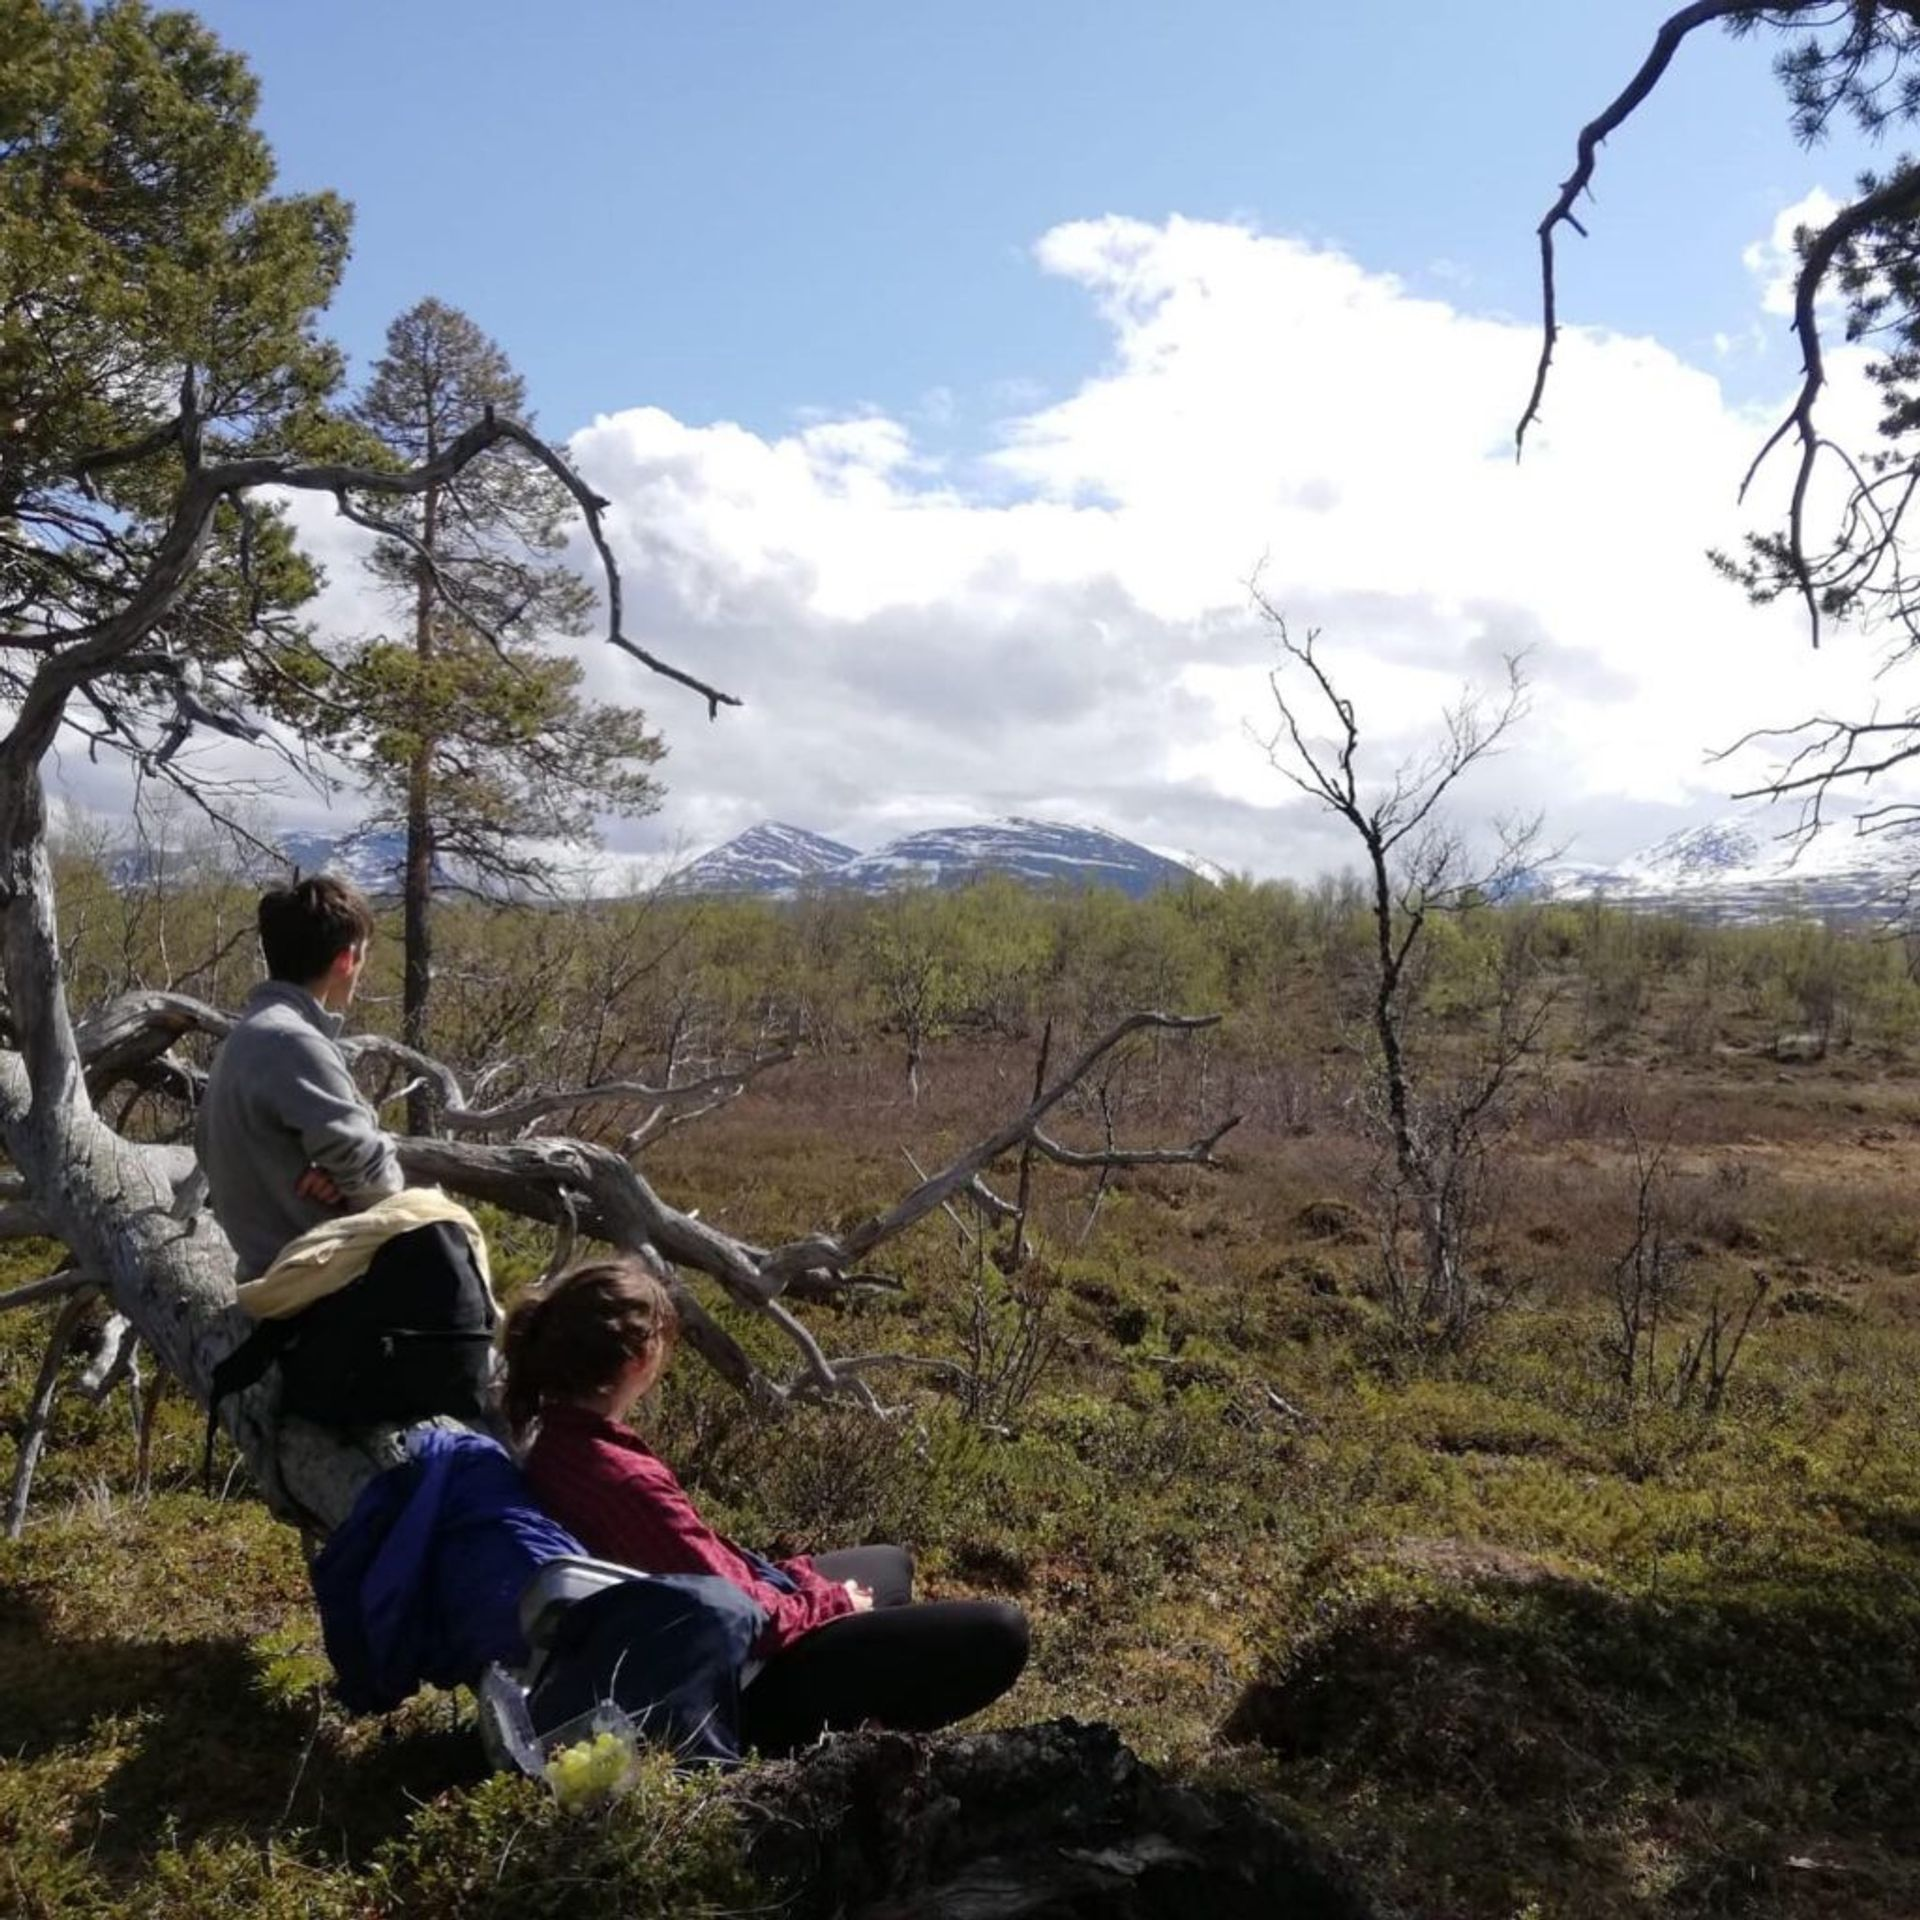 Two students sitting in a clearing looking at mountains.